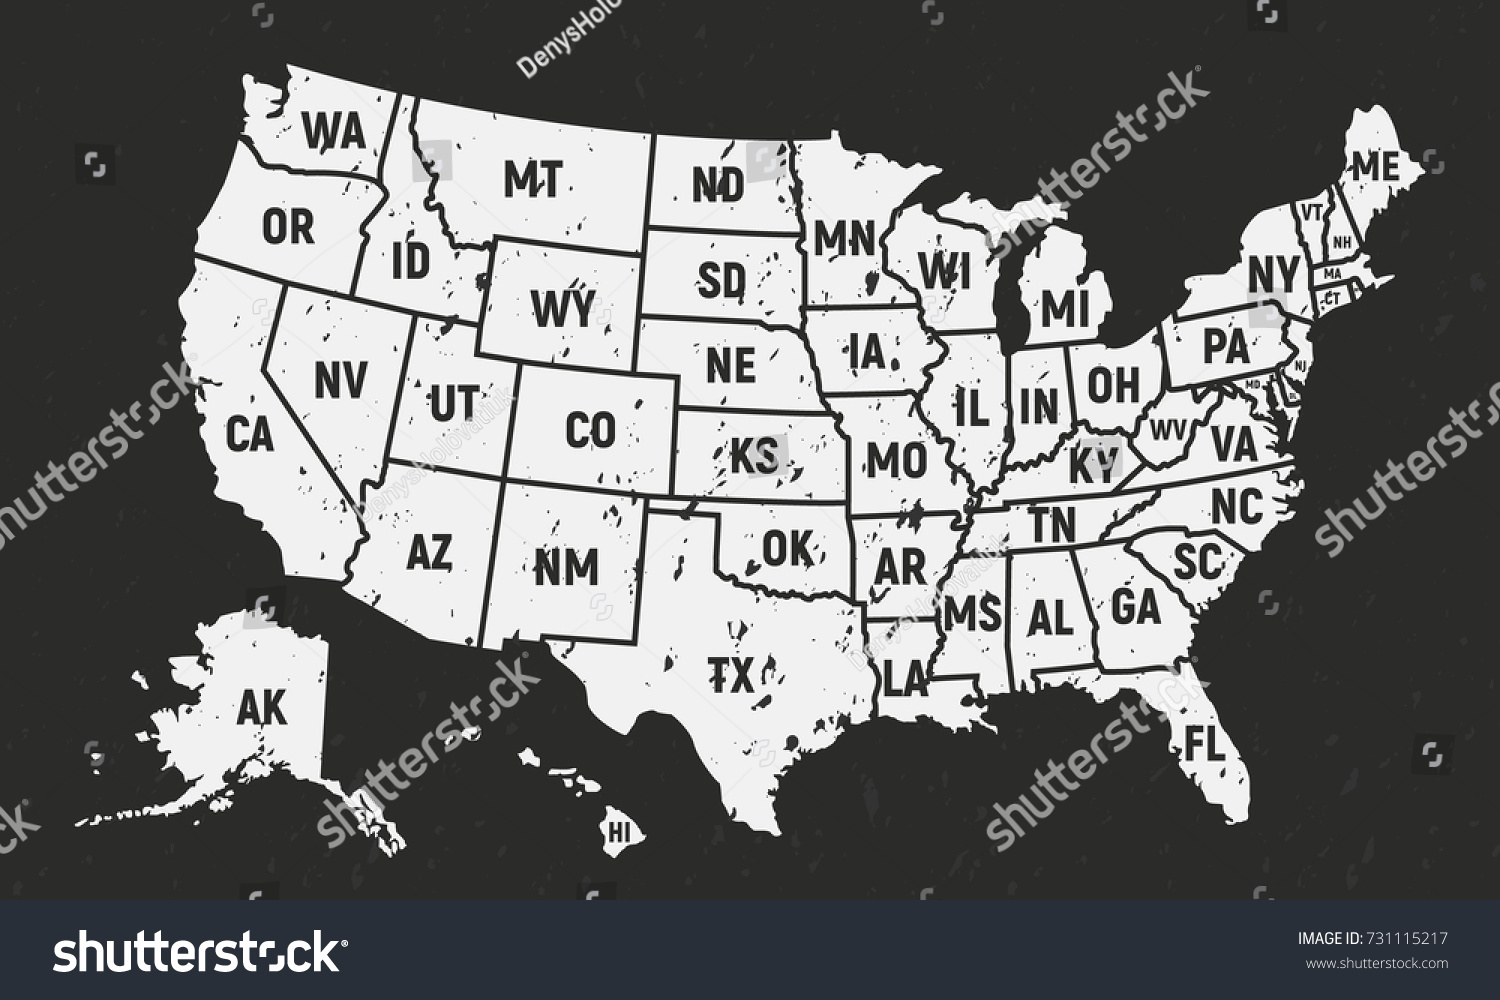 United States Map With State Names Black And White British People - Map of the usa with state names